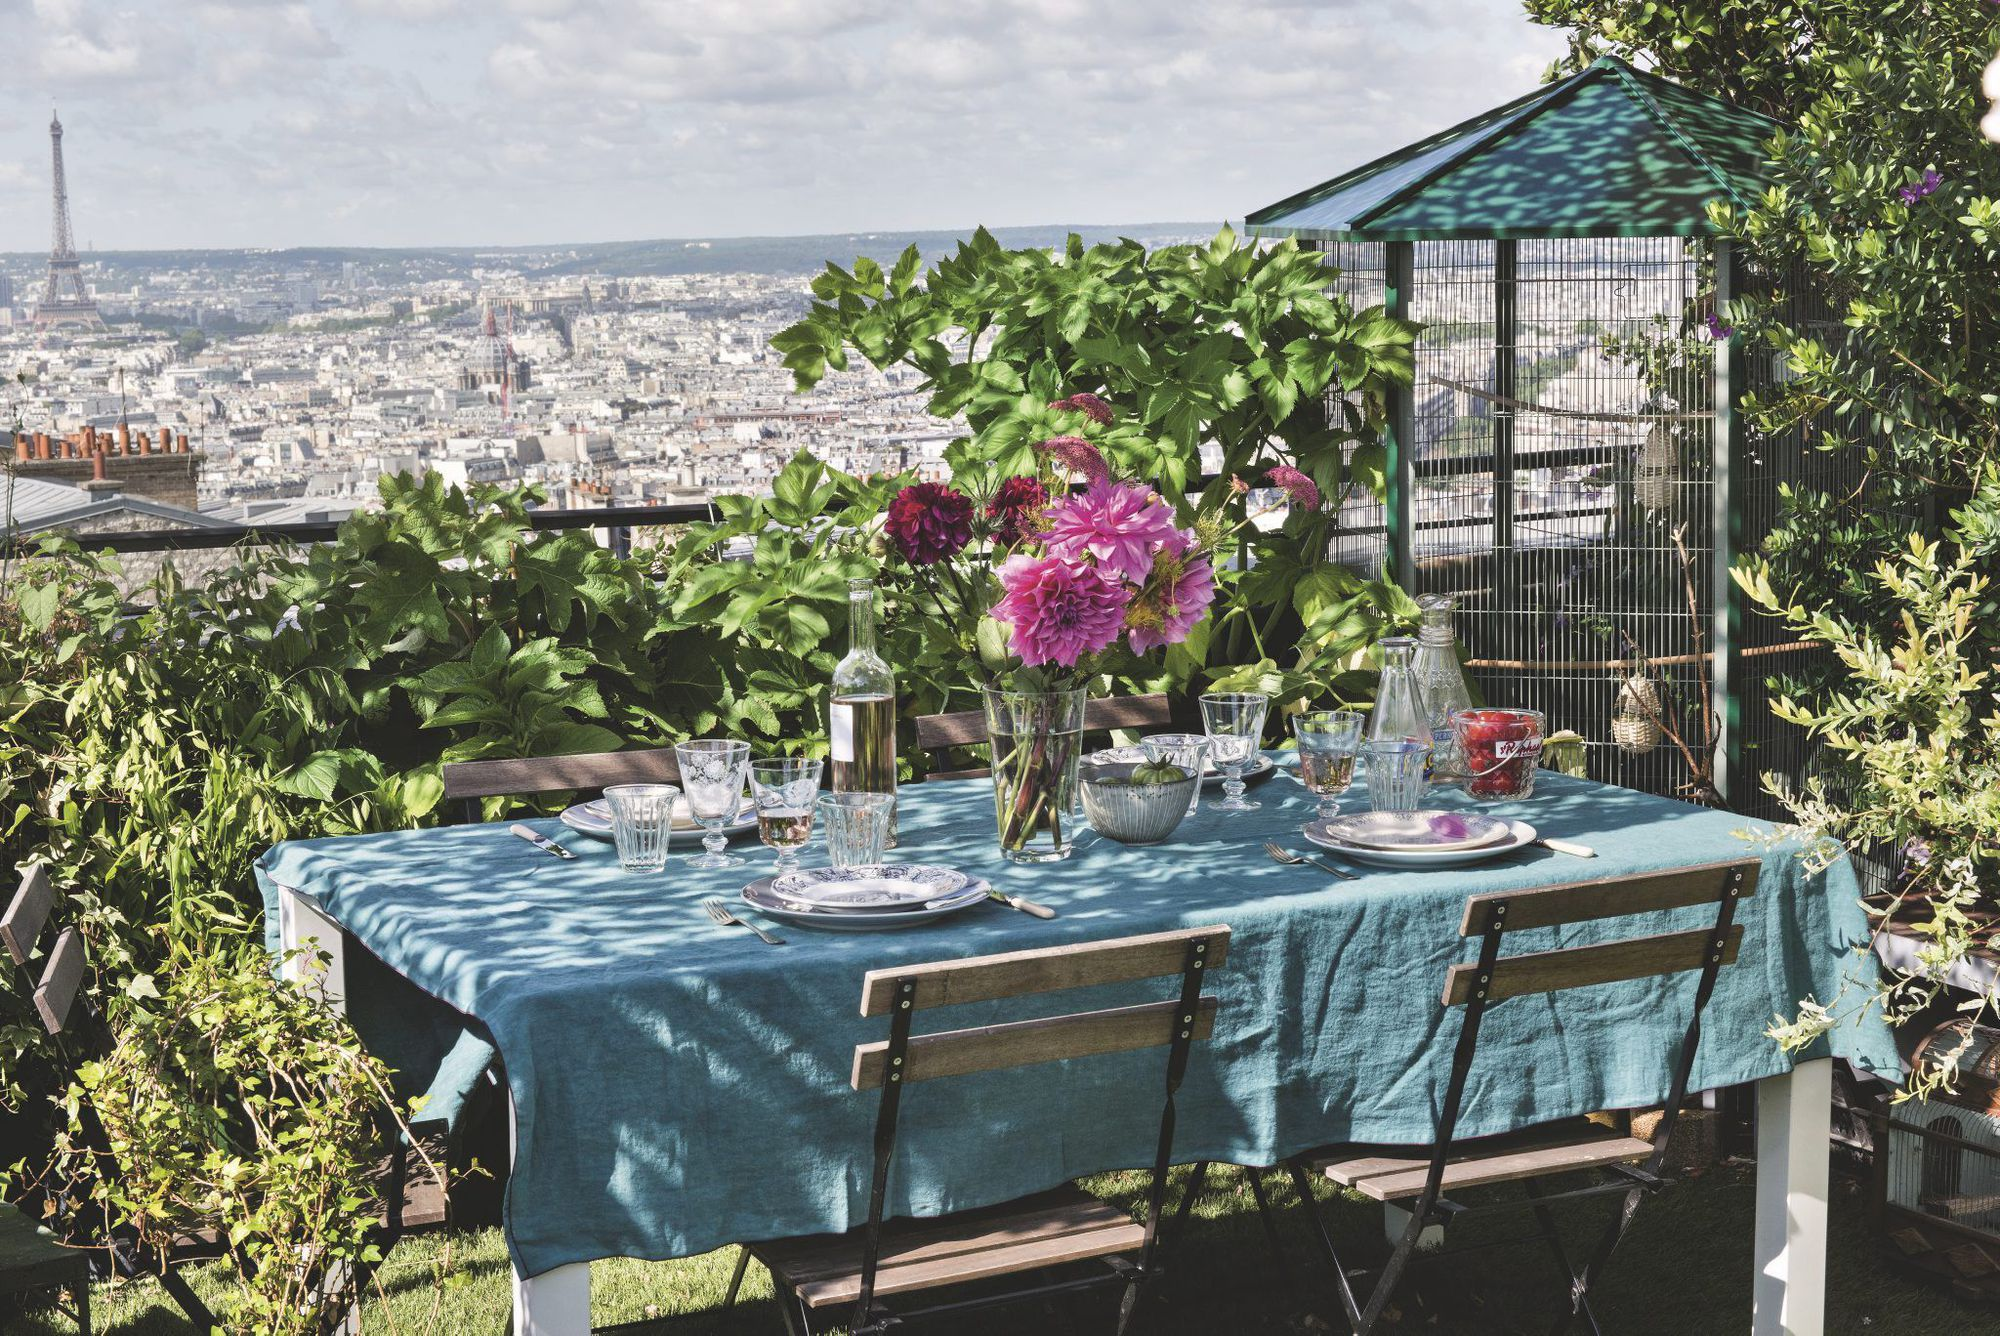 table-sur-grand-balcon-parisien-fleuri_5583887